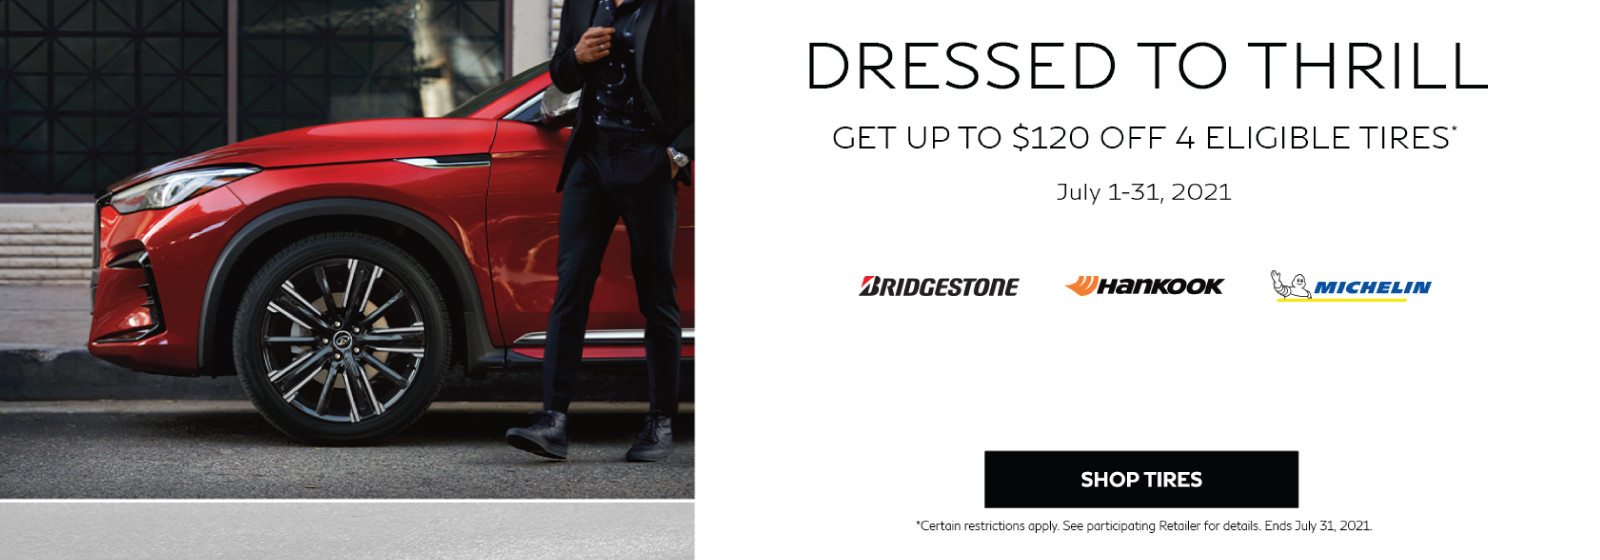 Dressed to Thrill. Get up to $120 off 4 Eligible Tires